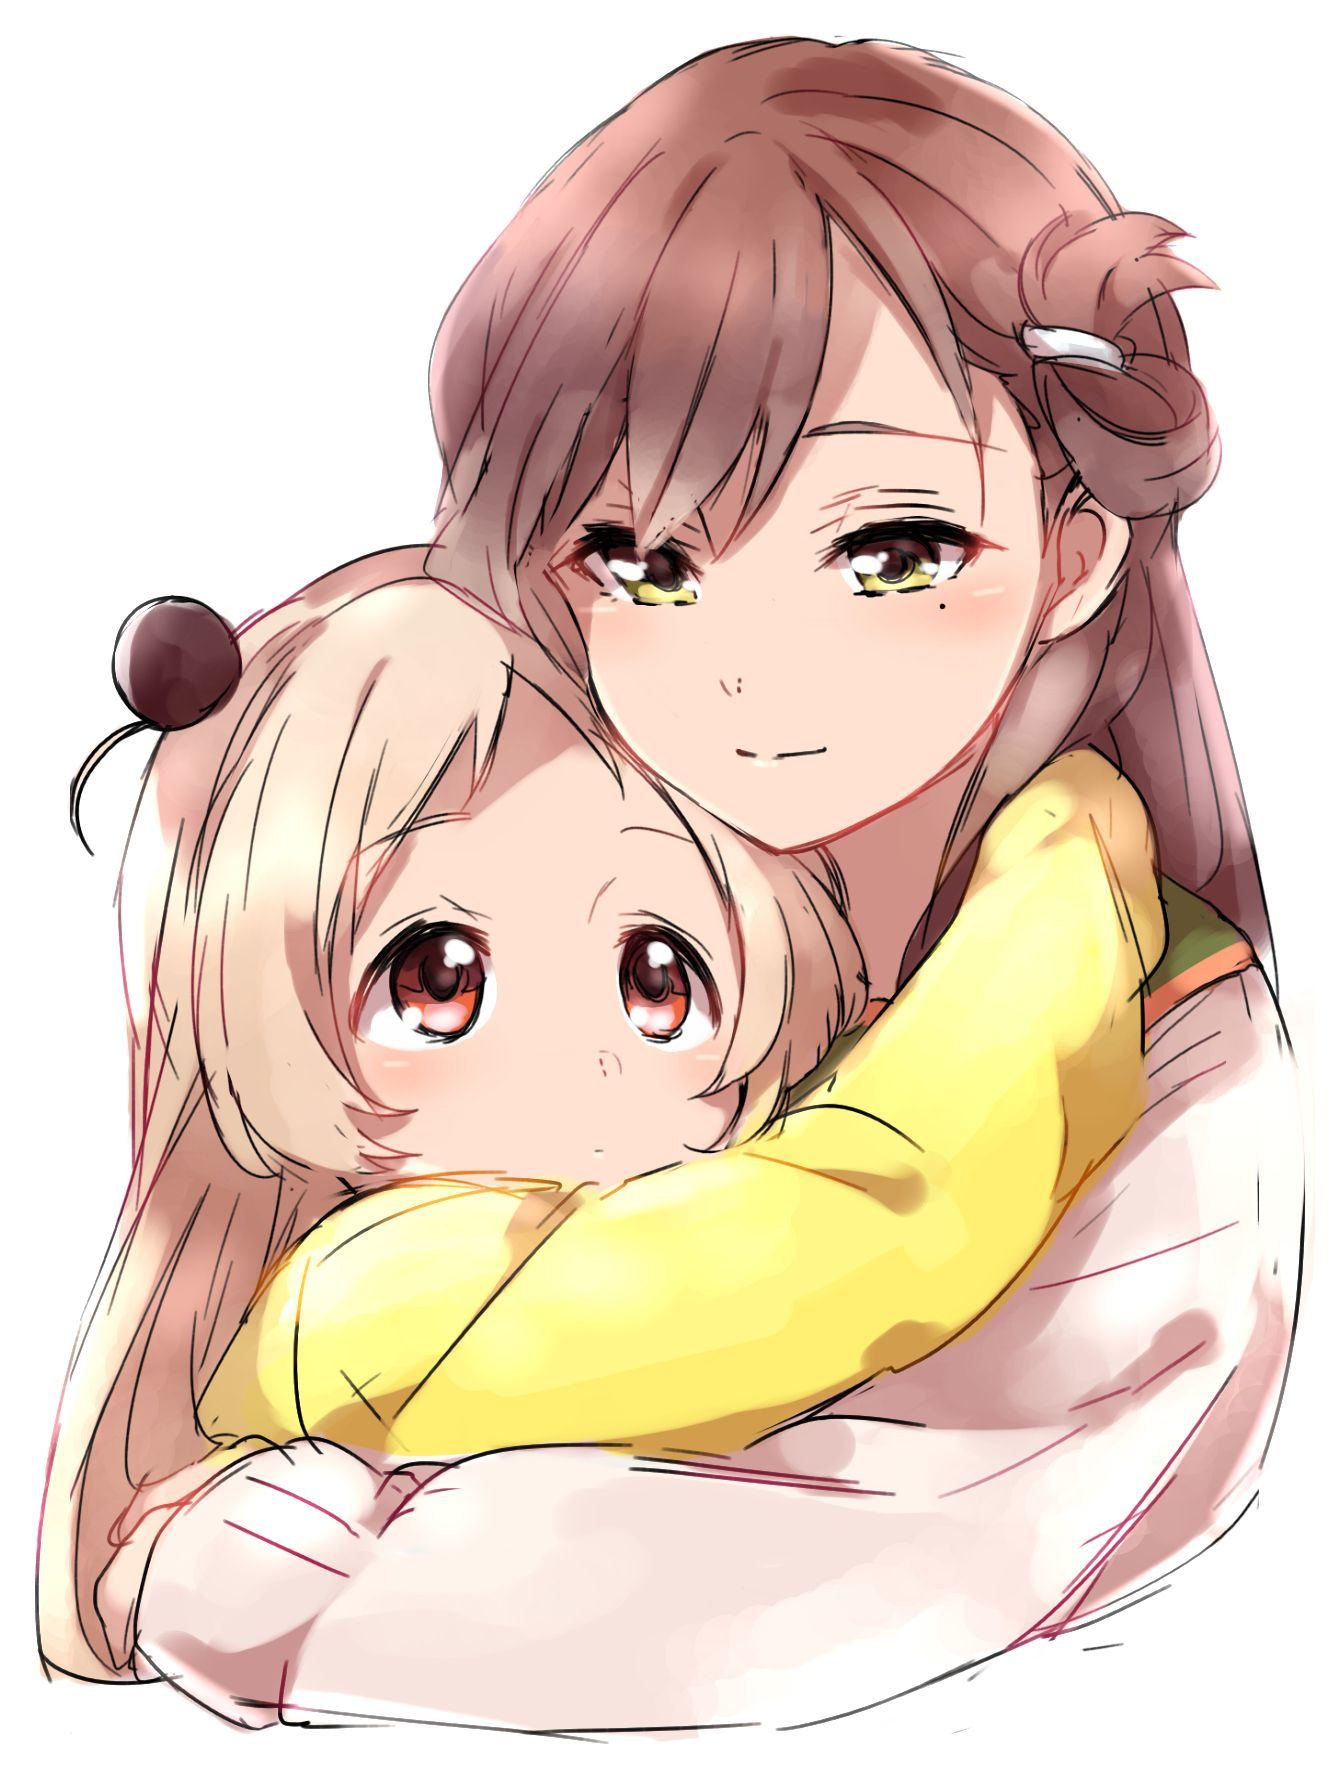 Anime mother and daughter